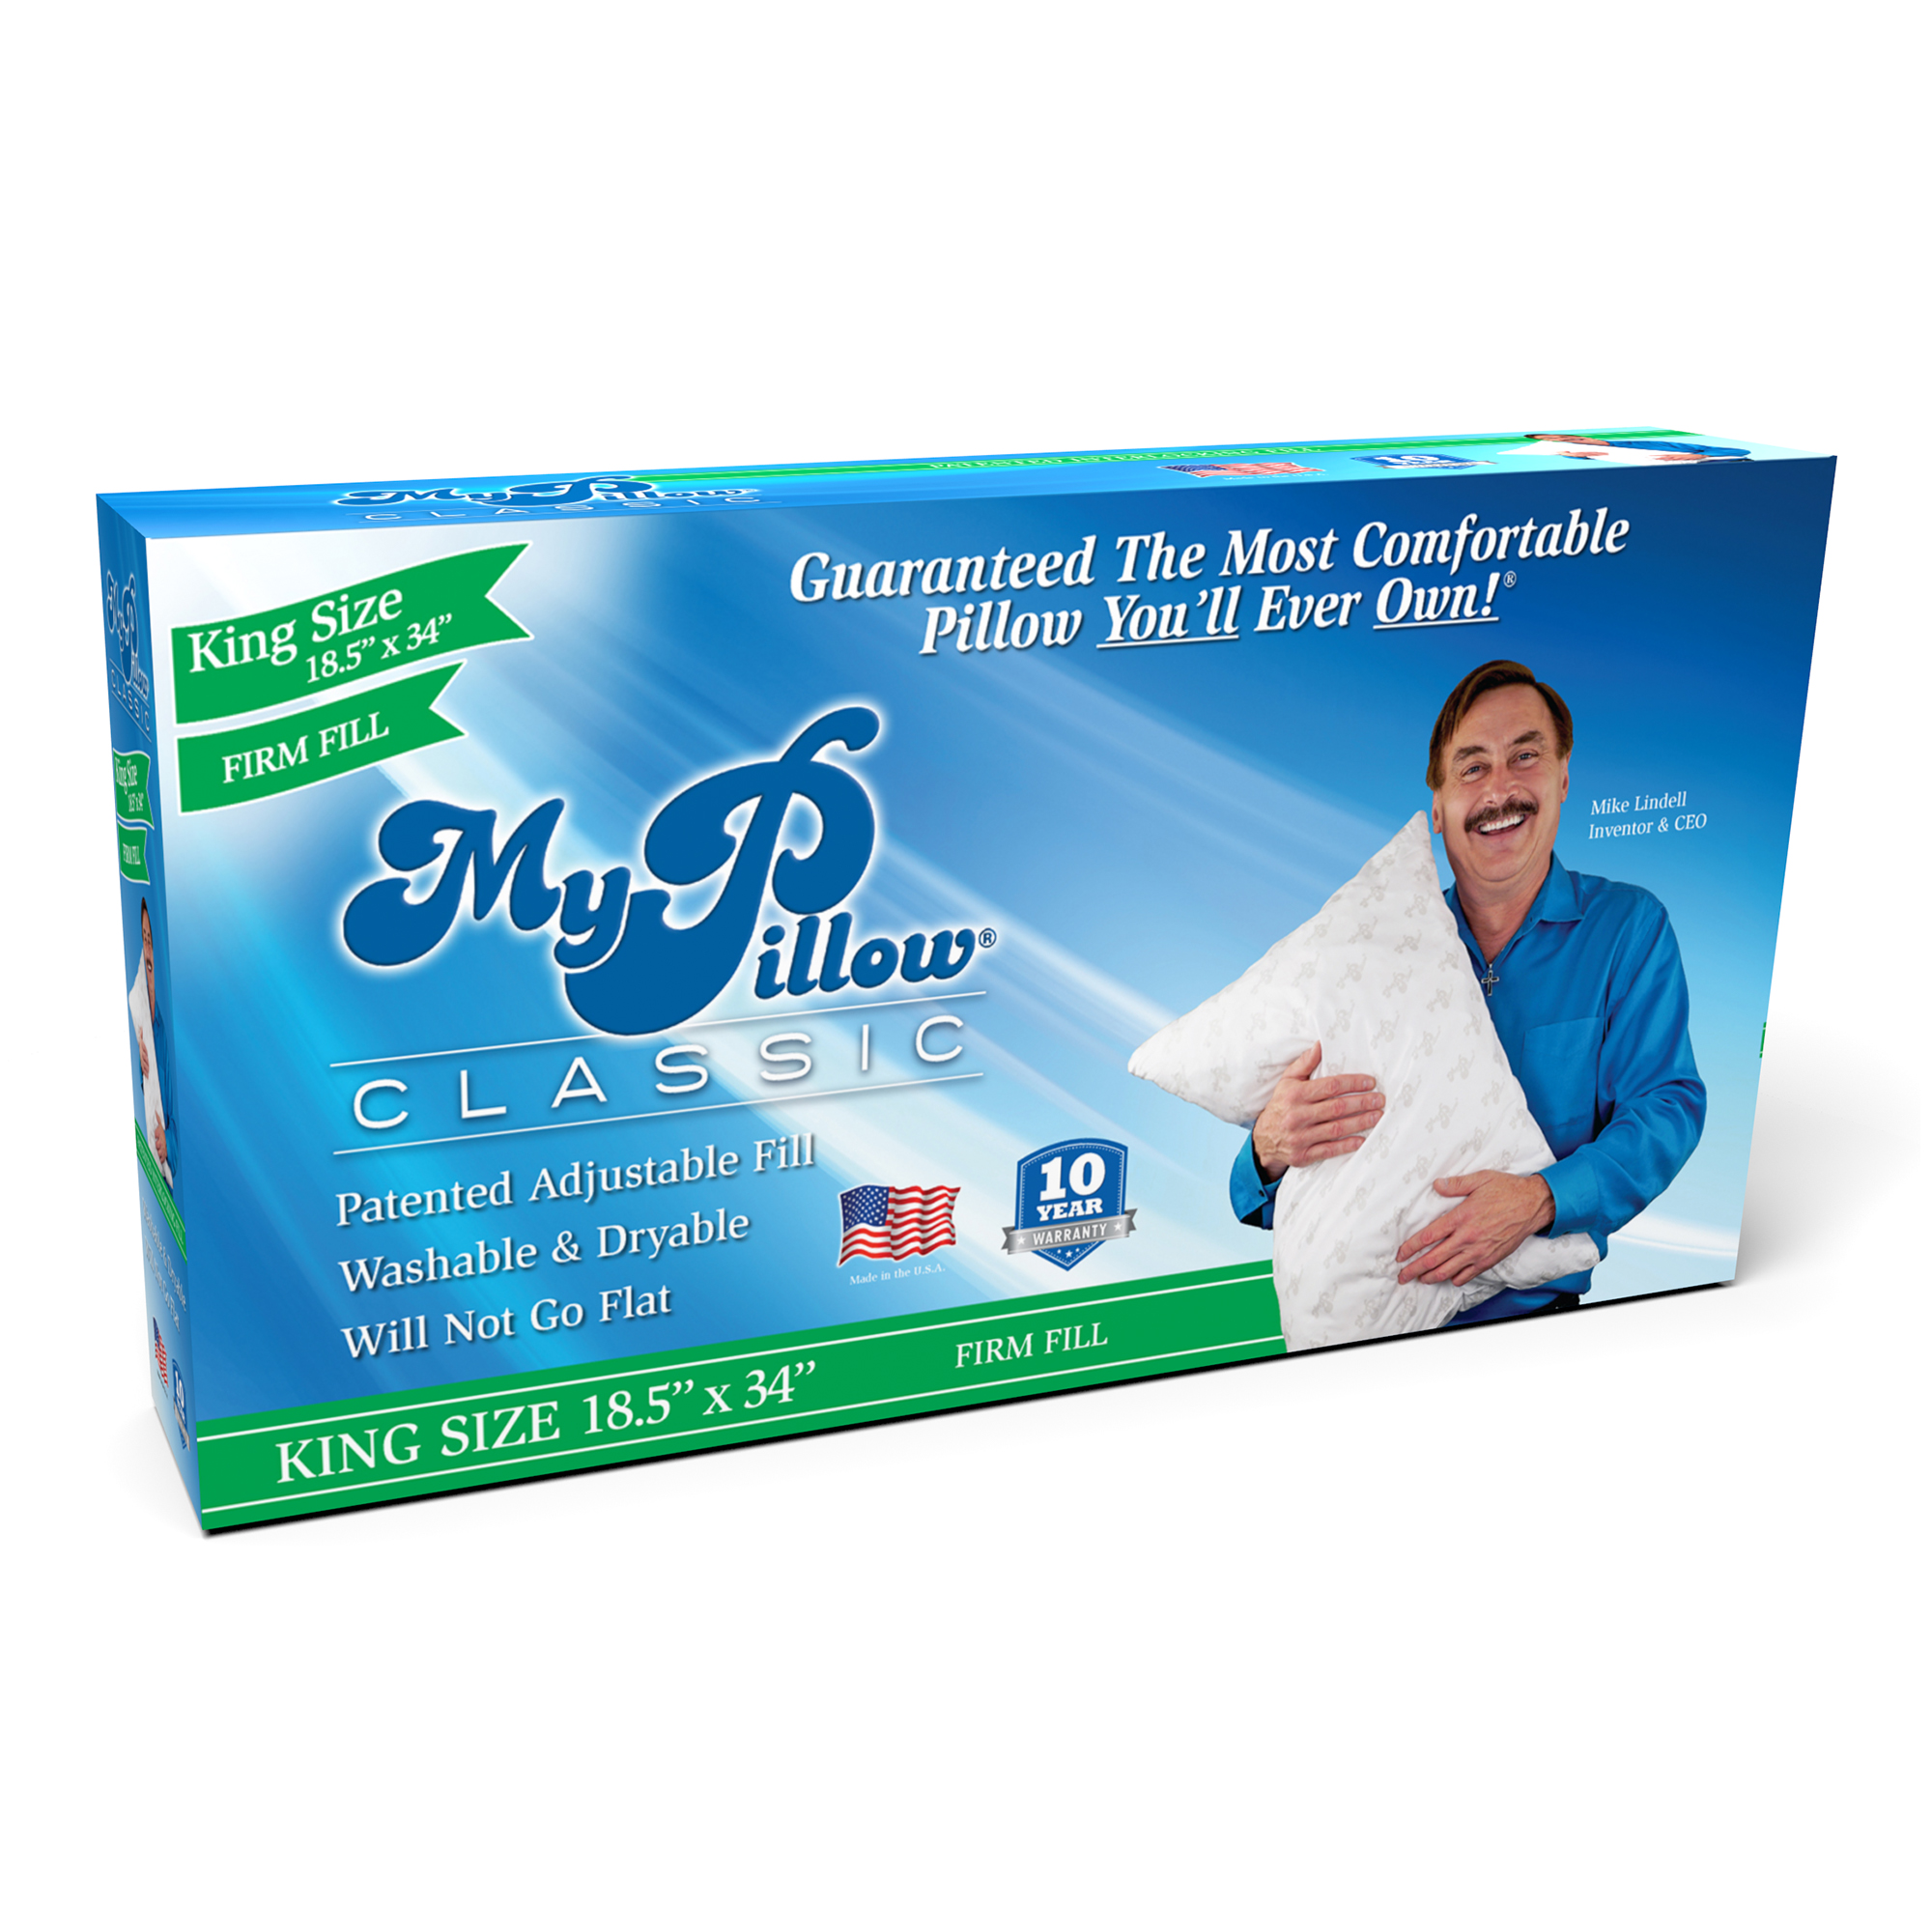 MyPillow Classic King Size Pillow, Firm Support